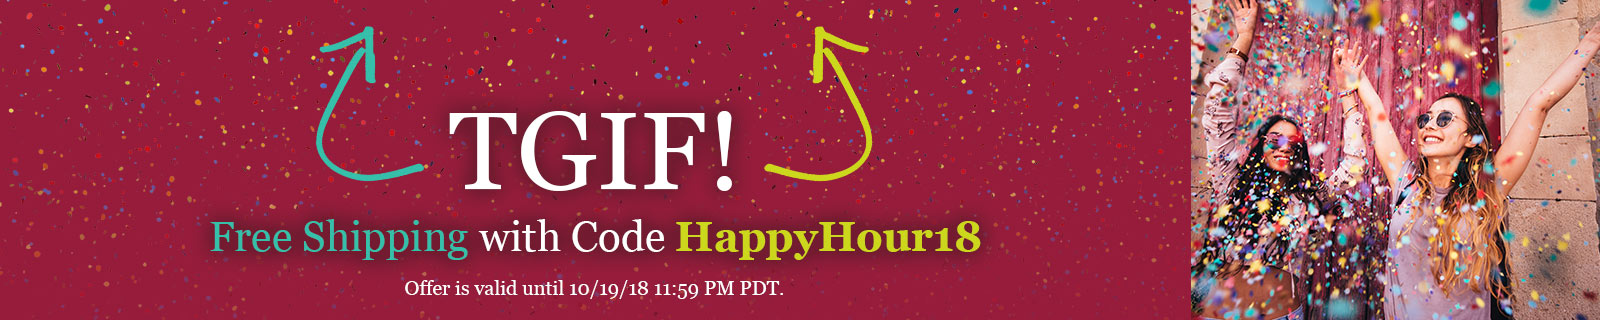 TGIF! Free Shipping with Code HappyHour18